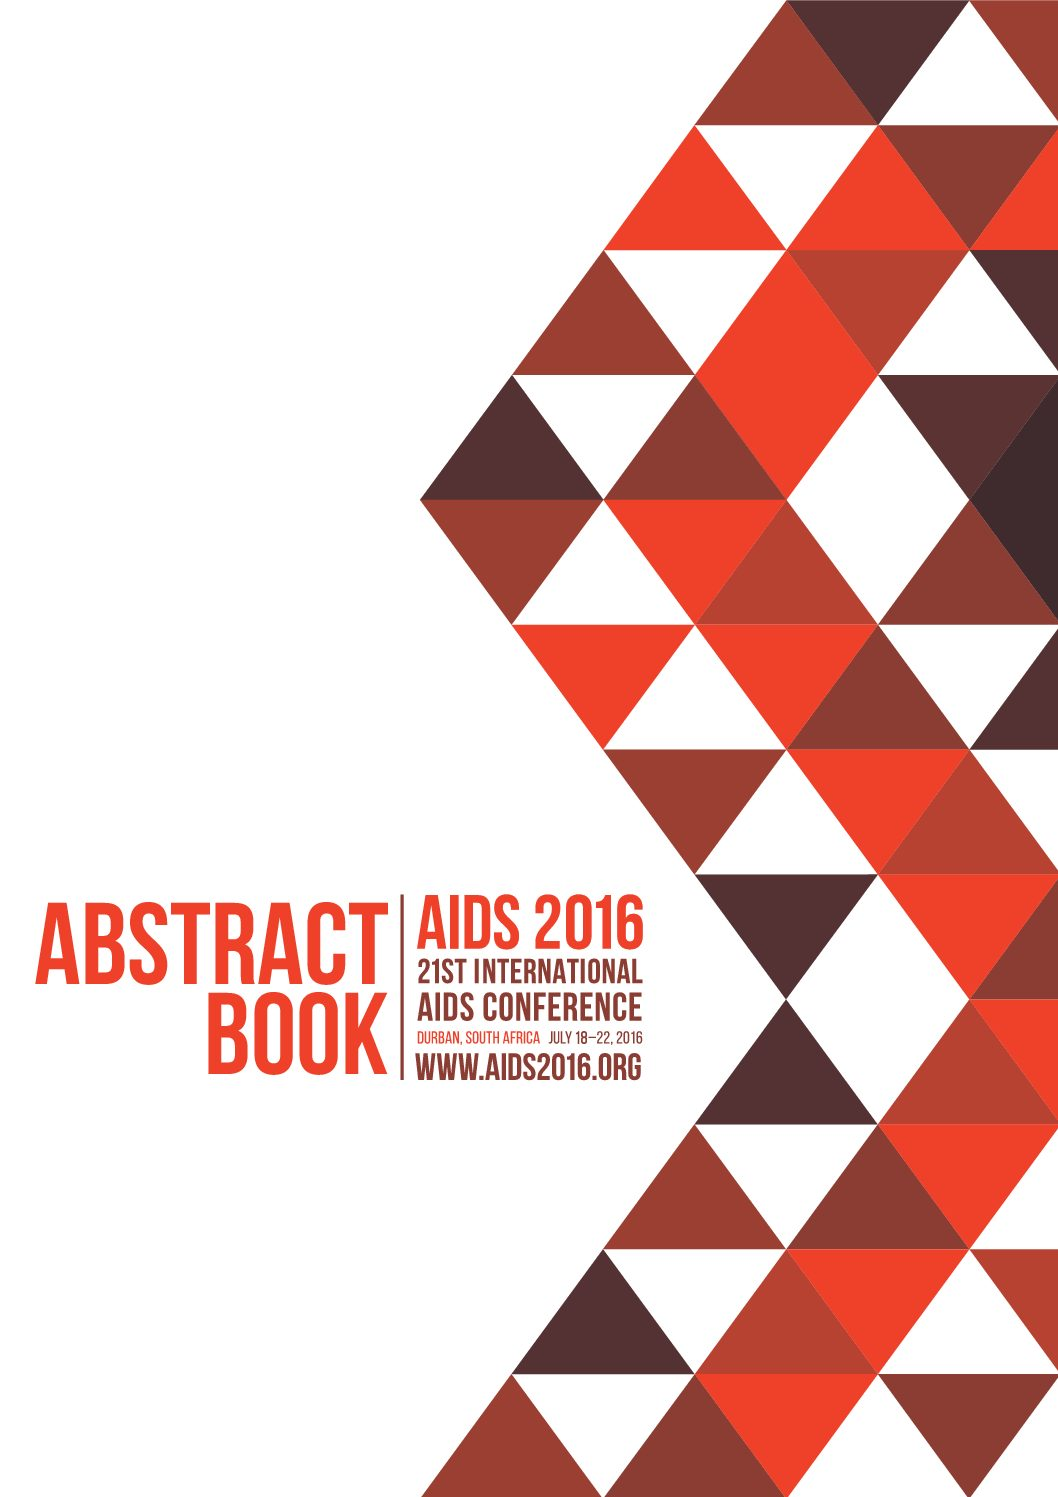 Abstract book. AIDS 2016. 21st international AIDS conference. 18 – 22 July 2016. Durban, South Africa.